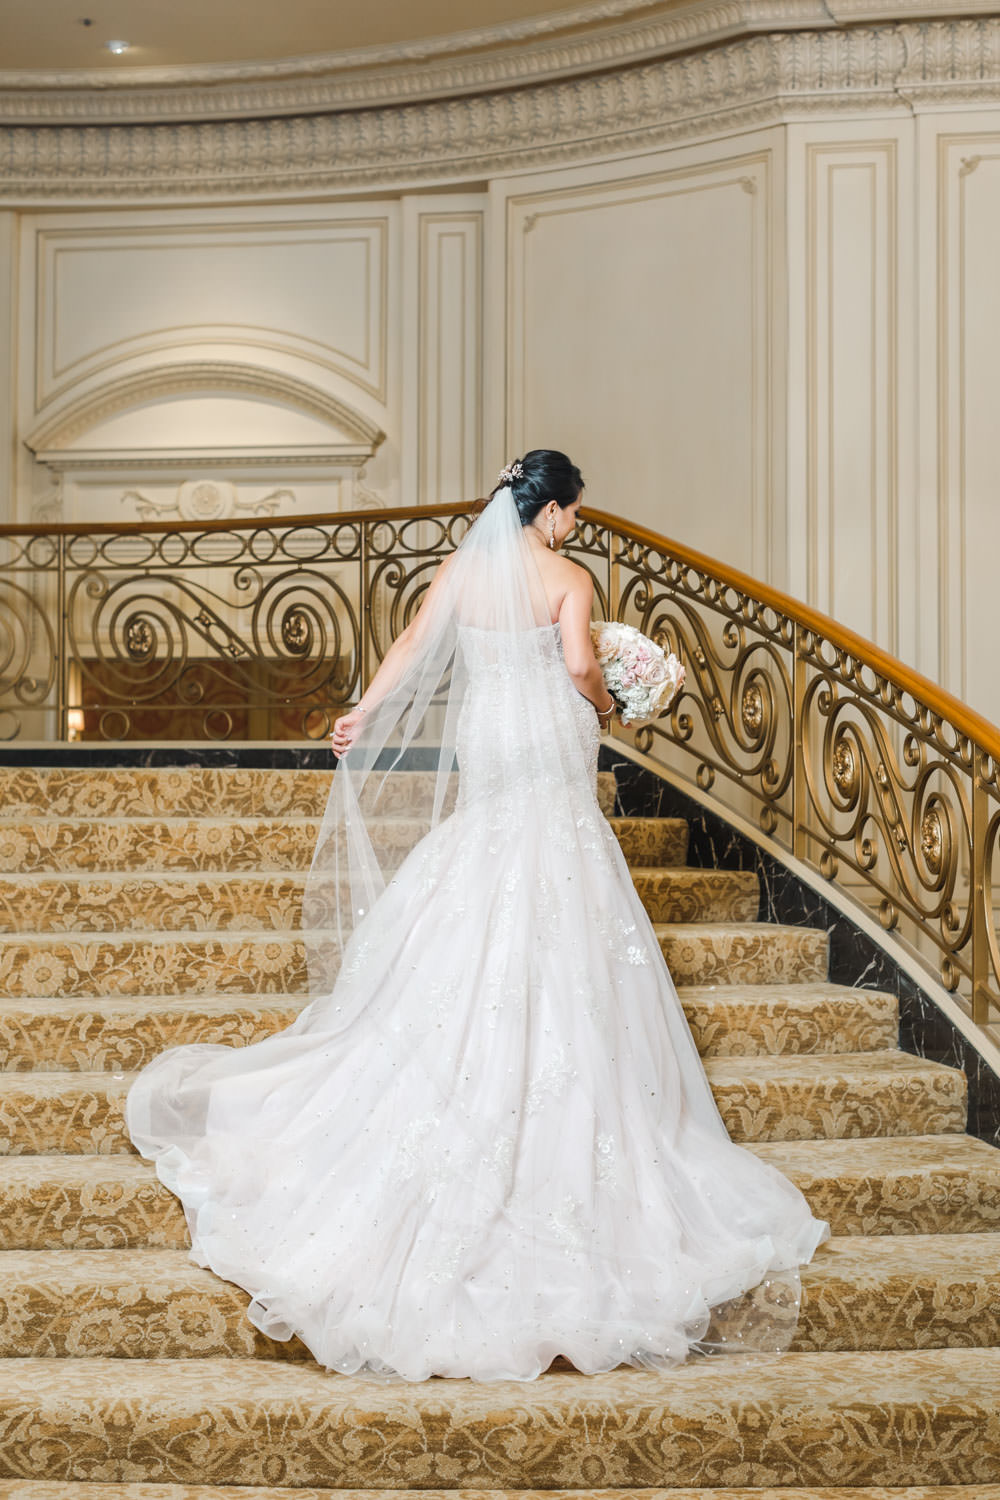 Bridal portrait on staircase for Elegant Westgate Hotel Wedding in Downtown San Diego, Cavin Elizabeth Photography